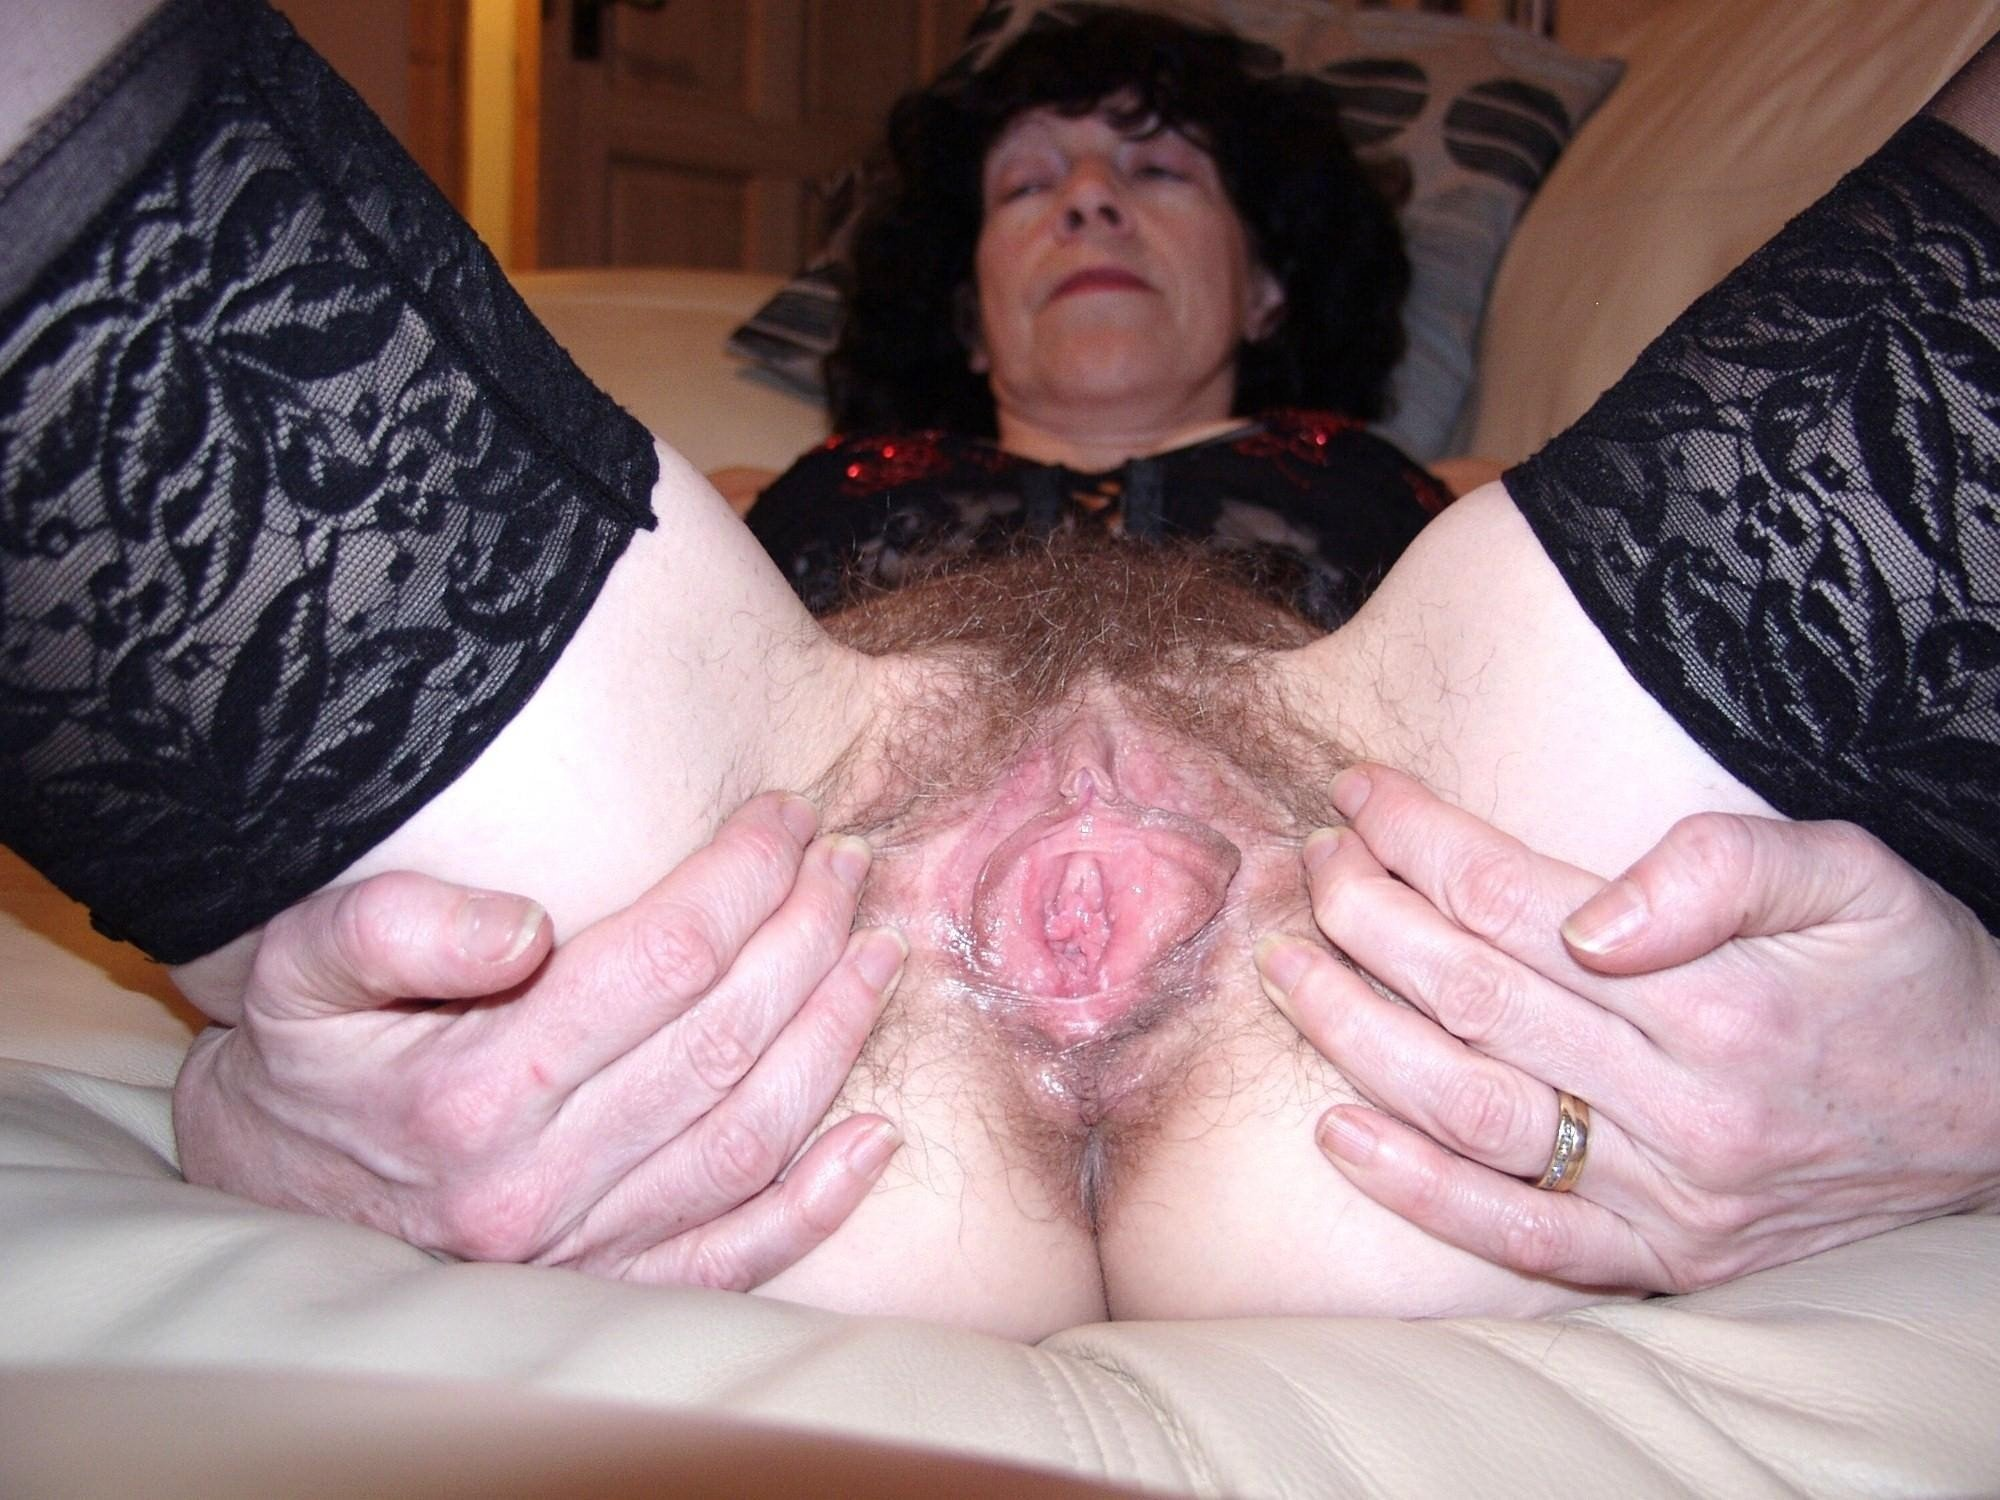 Enjoy fat images on free granny galery